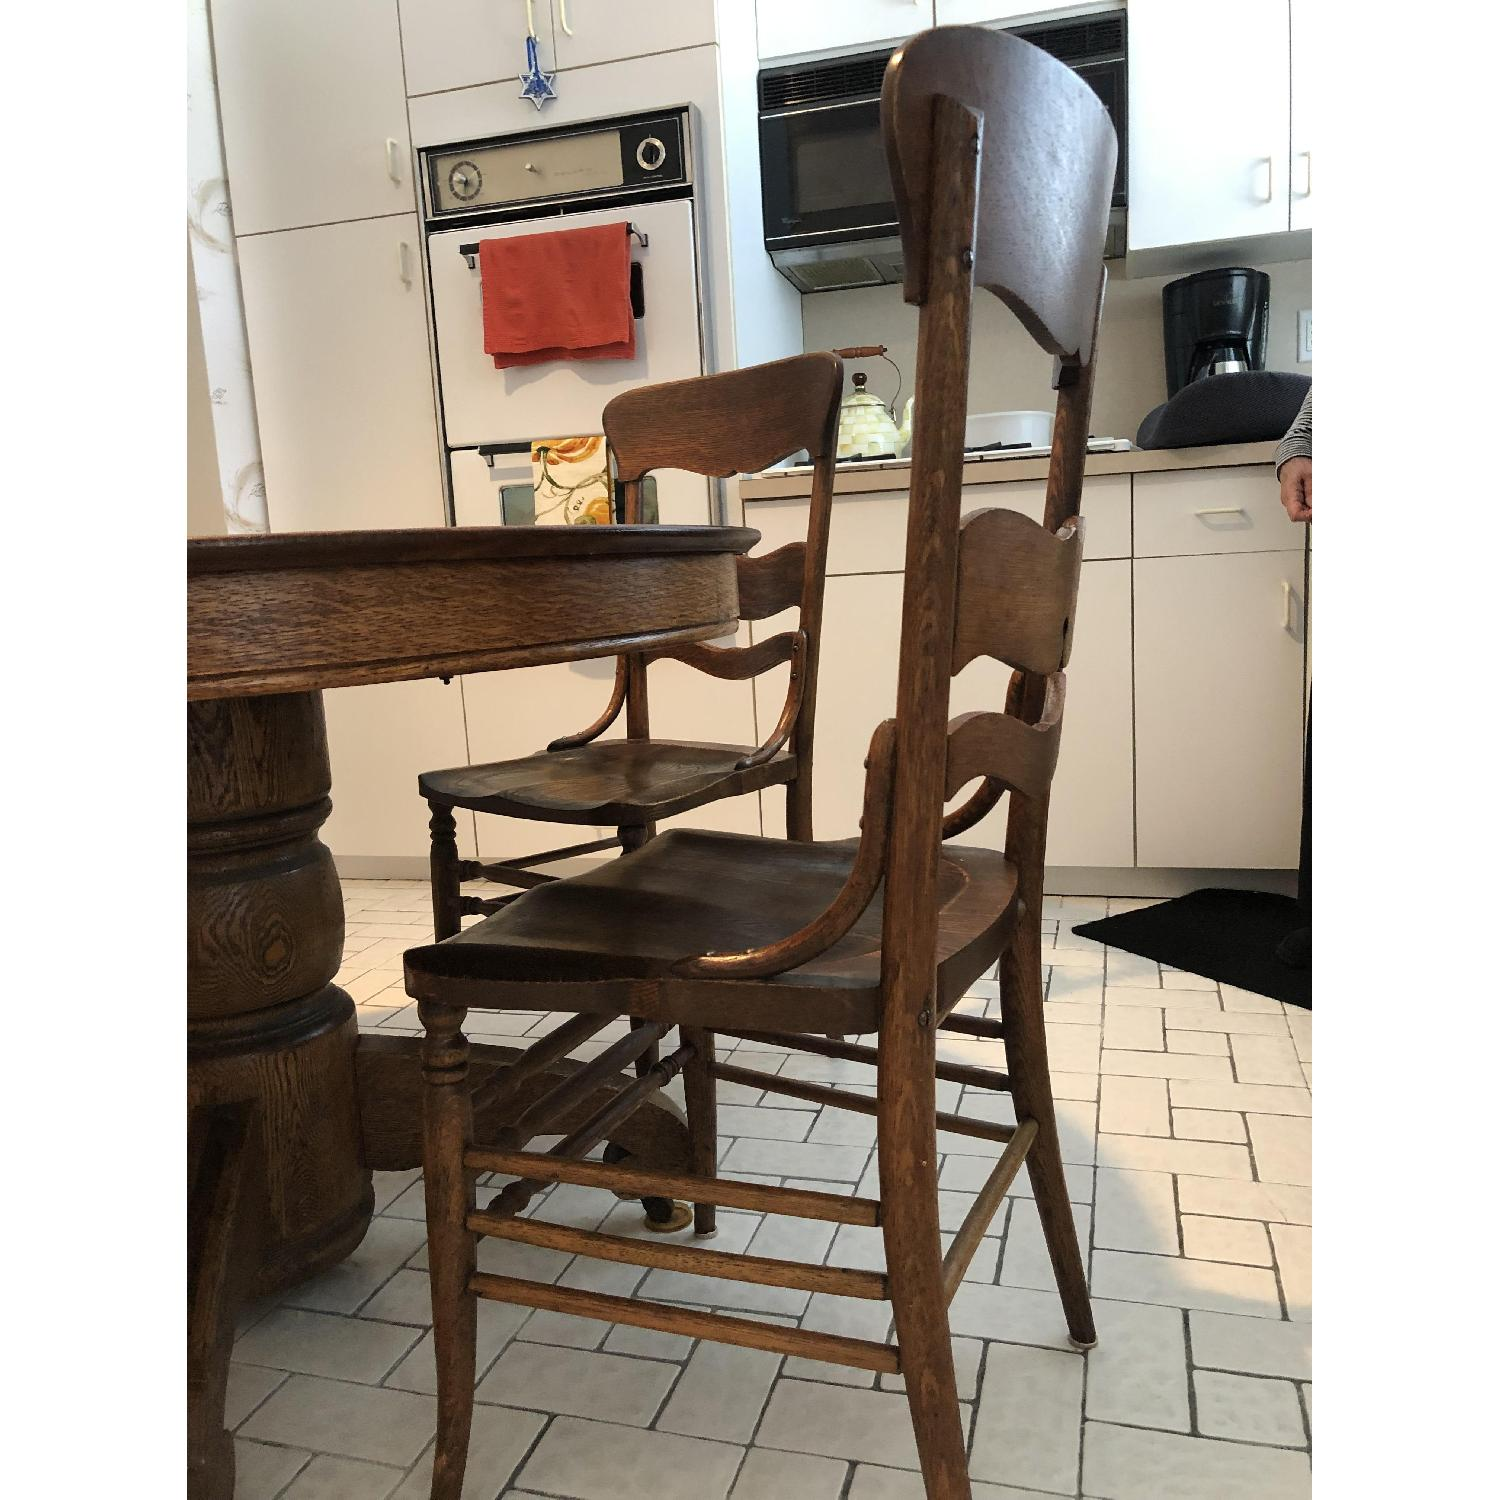 Vintage Round Wood Dining Table w/ 6 Chairs - image-1